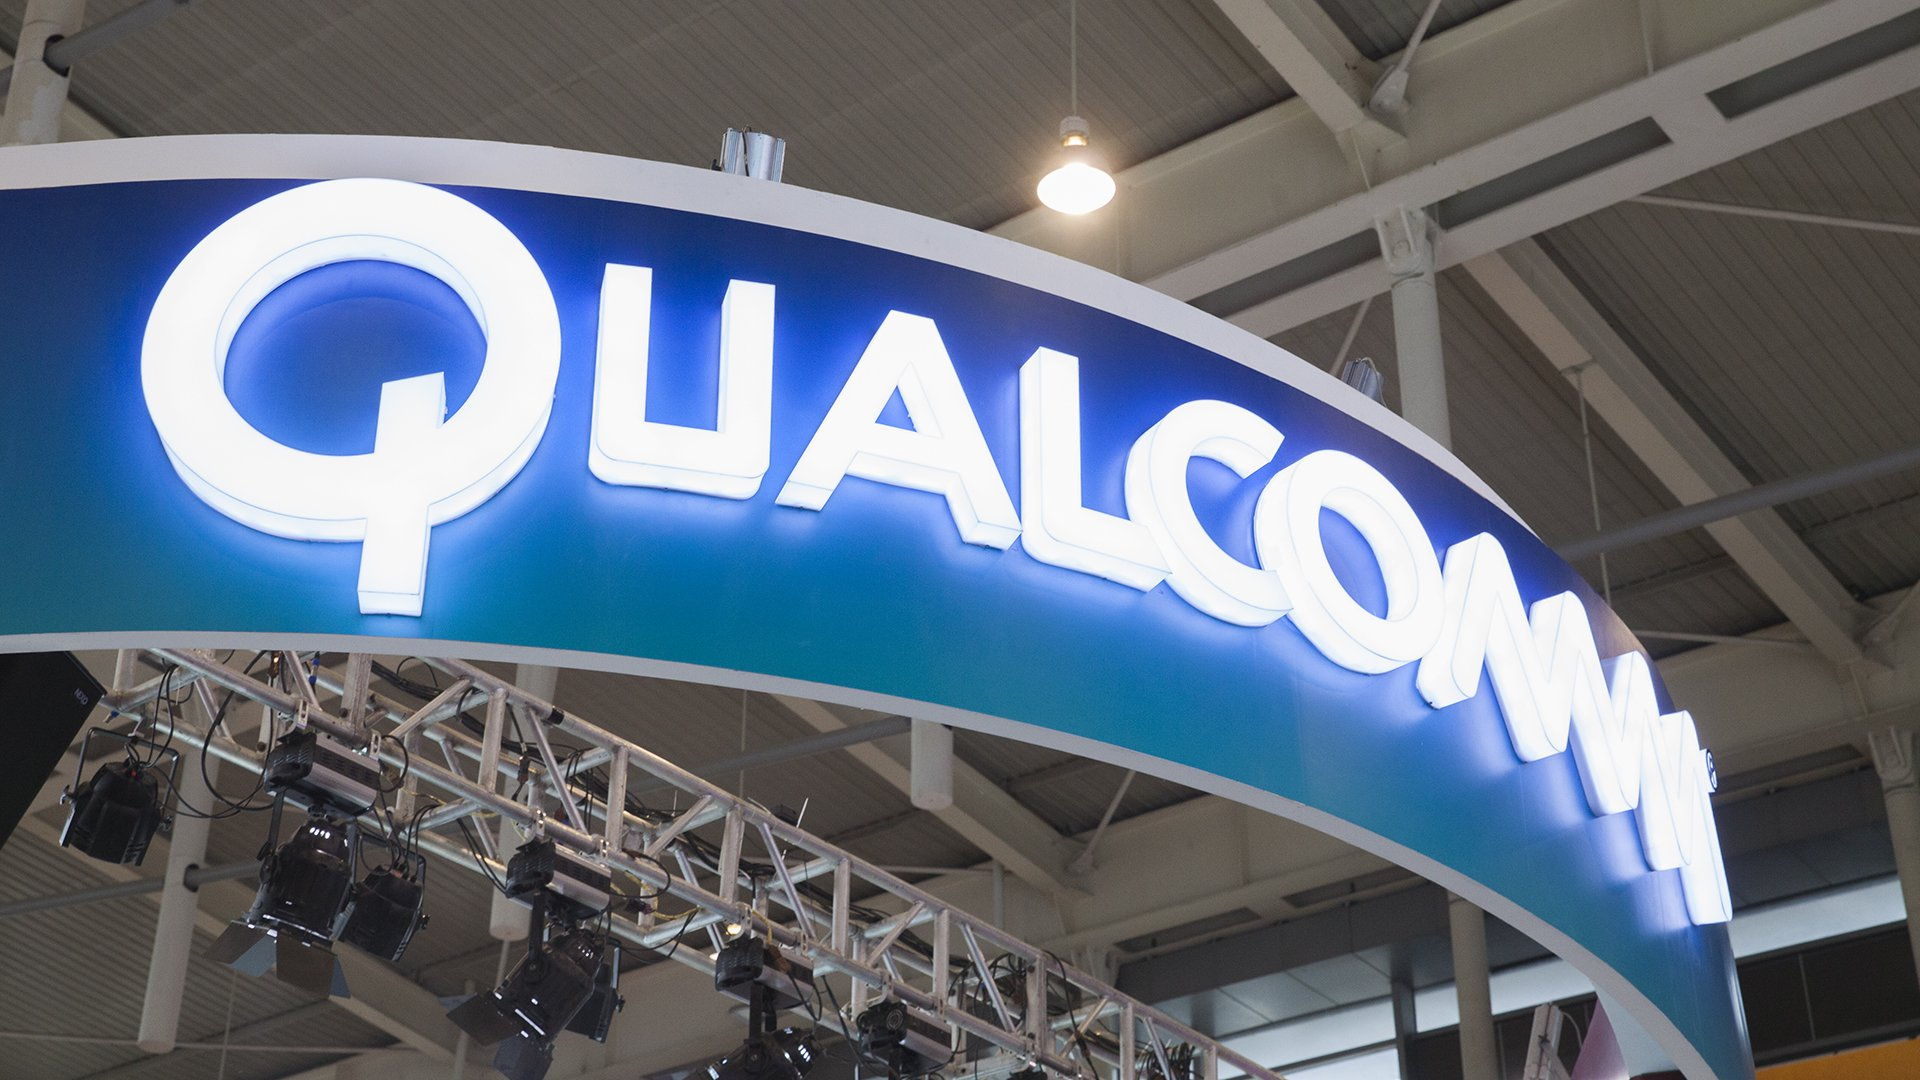 與 Qualcomm 深入合作,中國江蘇移動 10 月底完成 LTE-A 部署